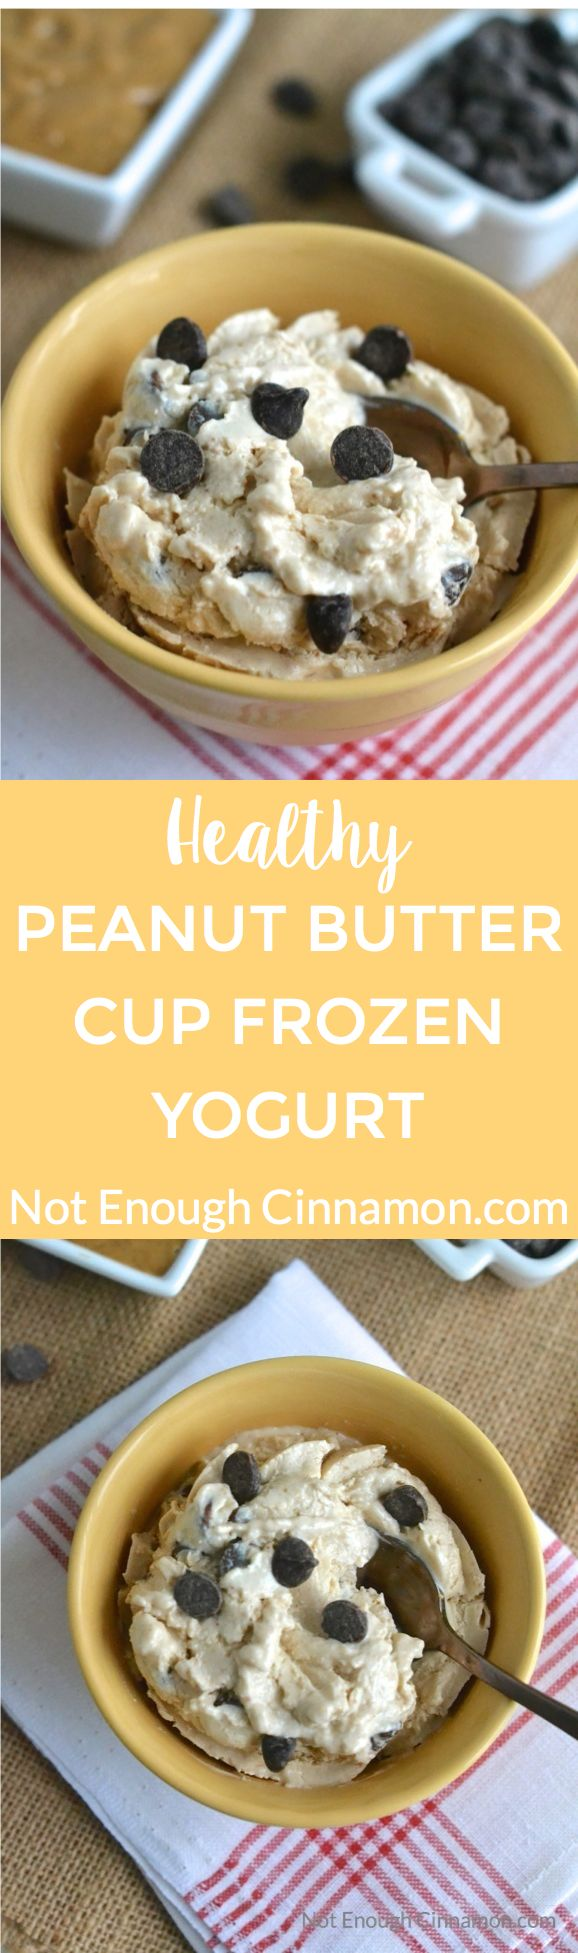 Peanut Butter Cup Frozen Yogurt aka Healthy Reese's Ice Cream - Click to find the recipe on NotEnoughCinnamon.com #desserts